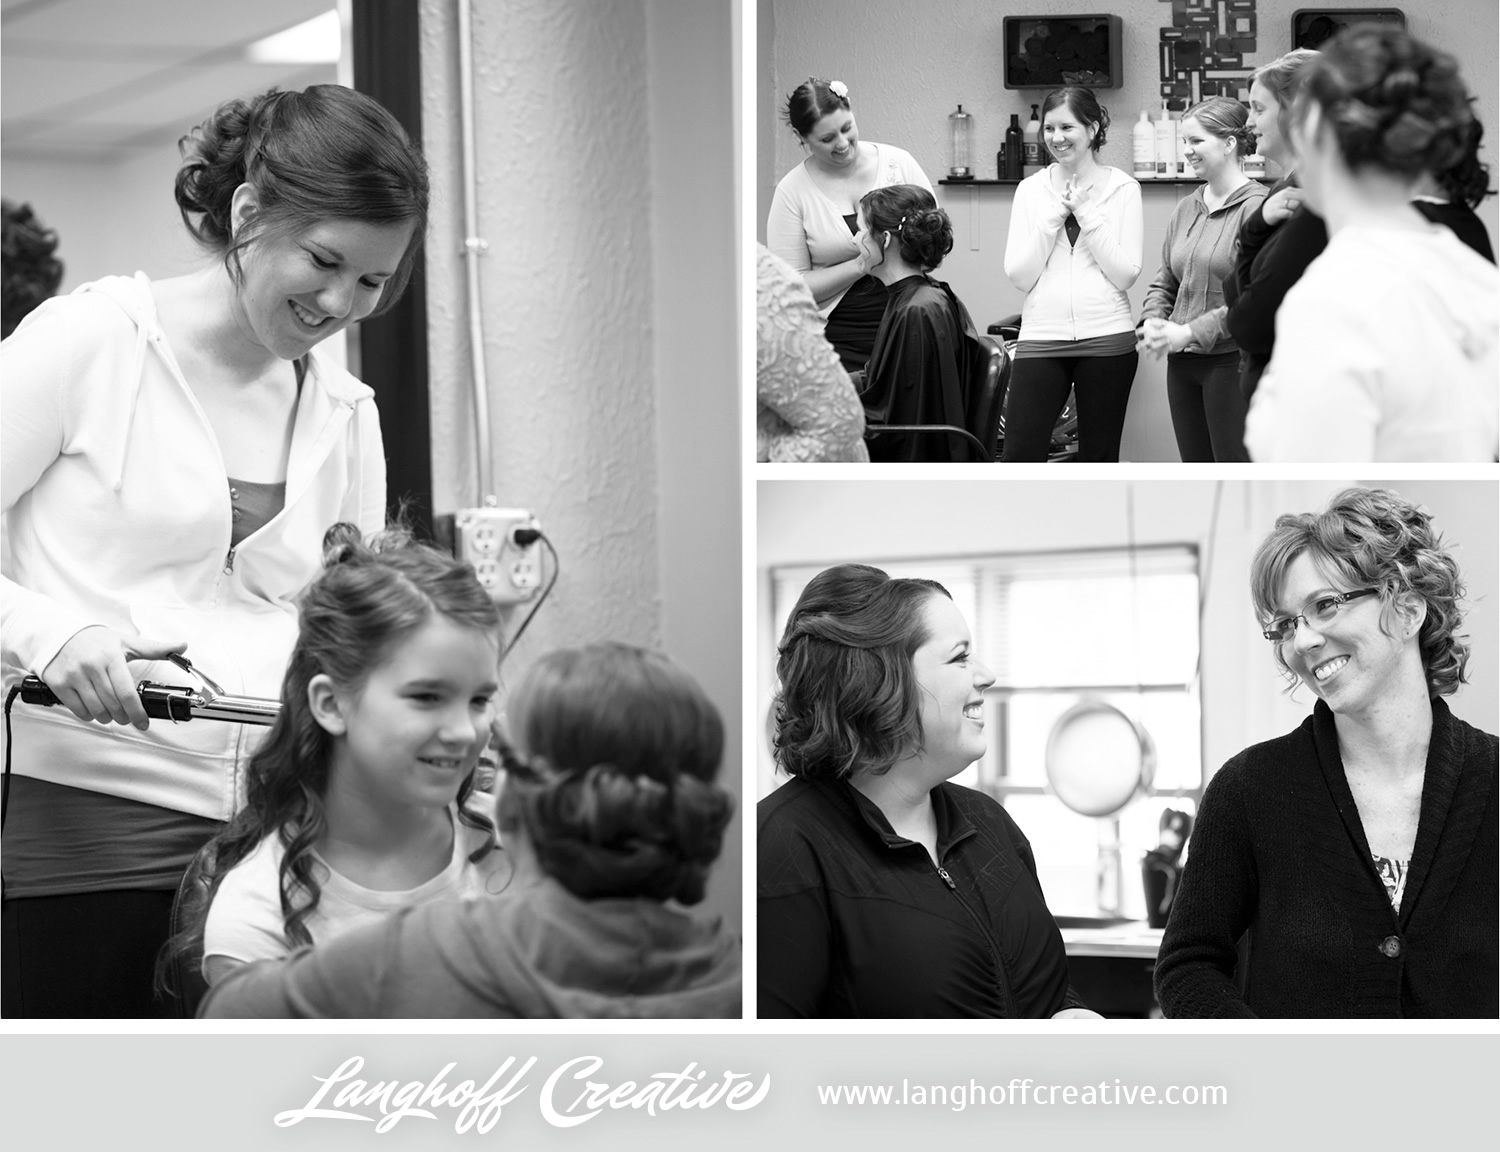 So many smiles in the salon! Julie's sisters and friends had fun together as they got ready for the wedding. Excitement & anticipation were certainly in the air!